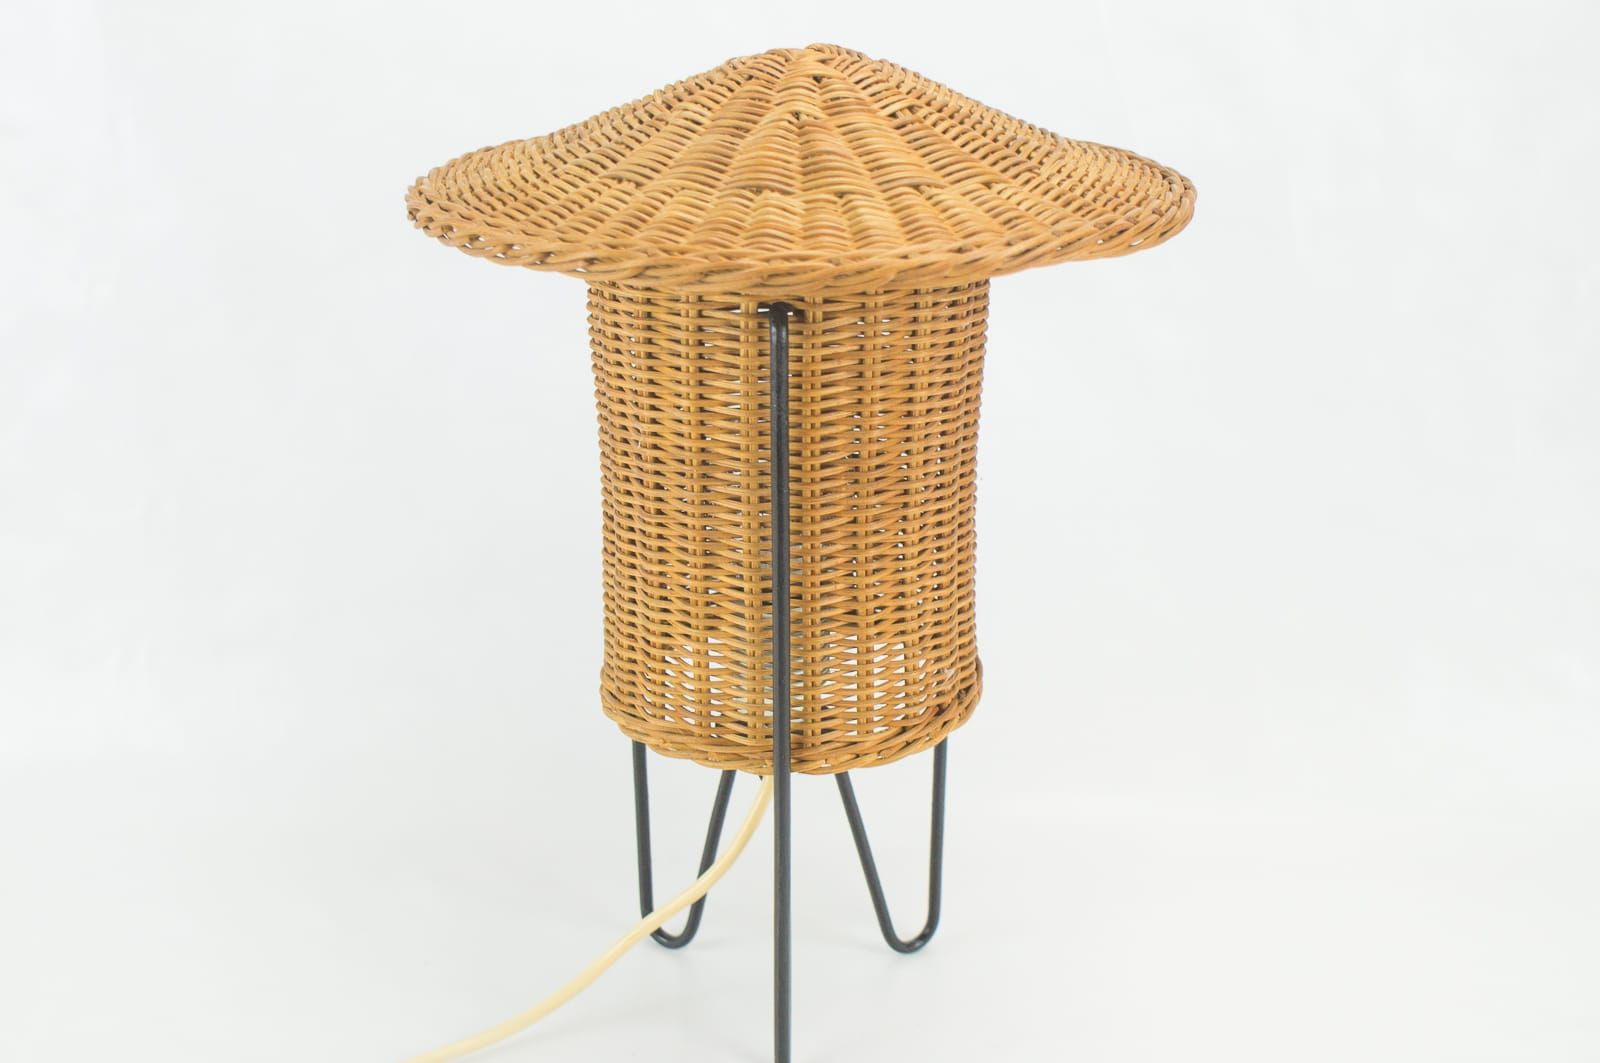 Austrian rattan table lamp 1950s for sale at pamono austrian rattan table lamp 1950s 5 38500 aloadofball